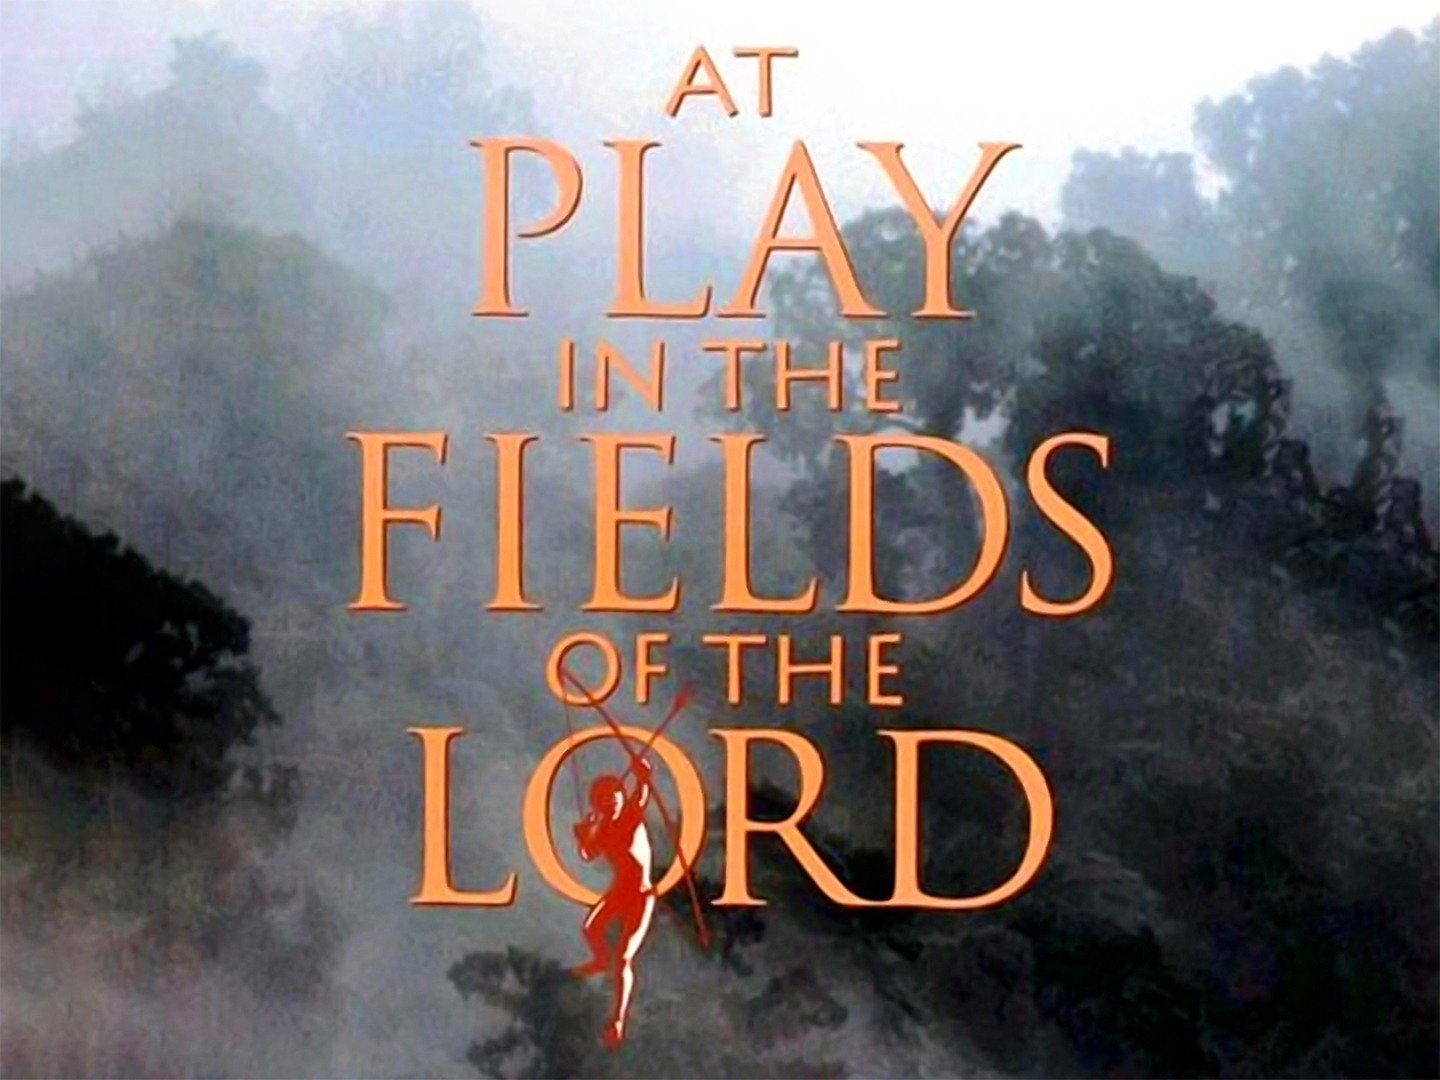 At Play in the Fields of the Lord (1991) on Collectorz.com